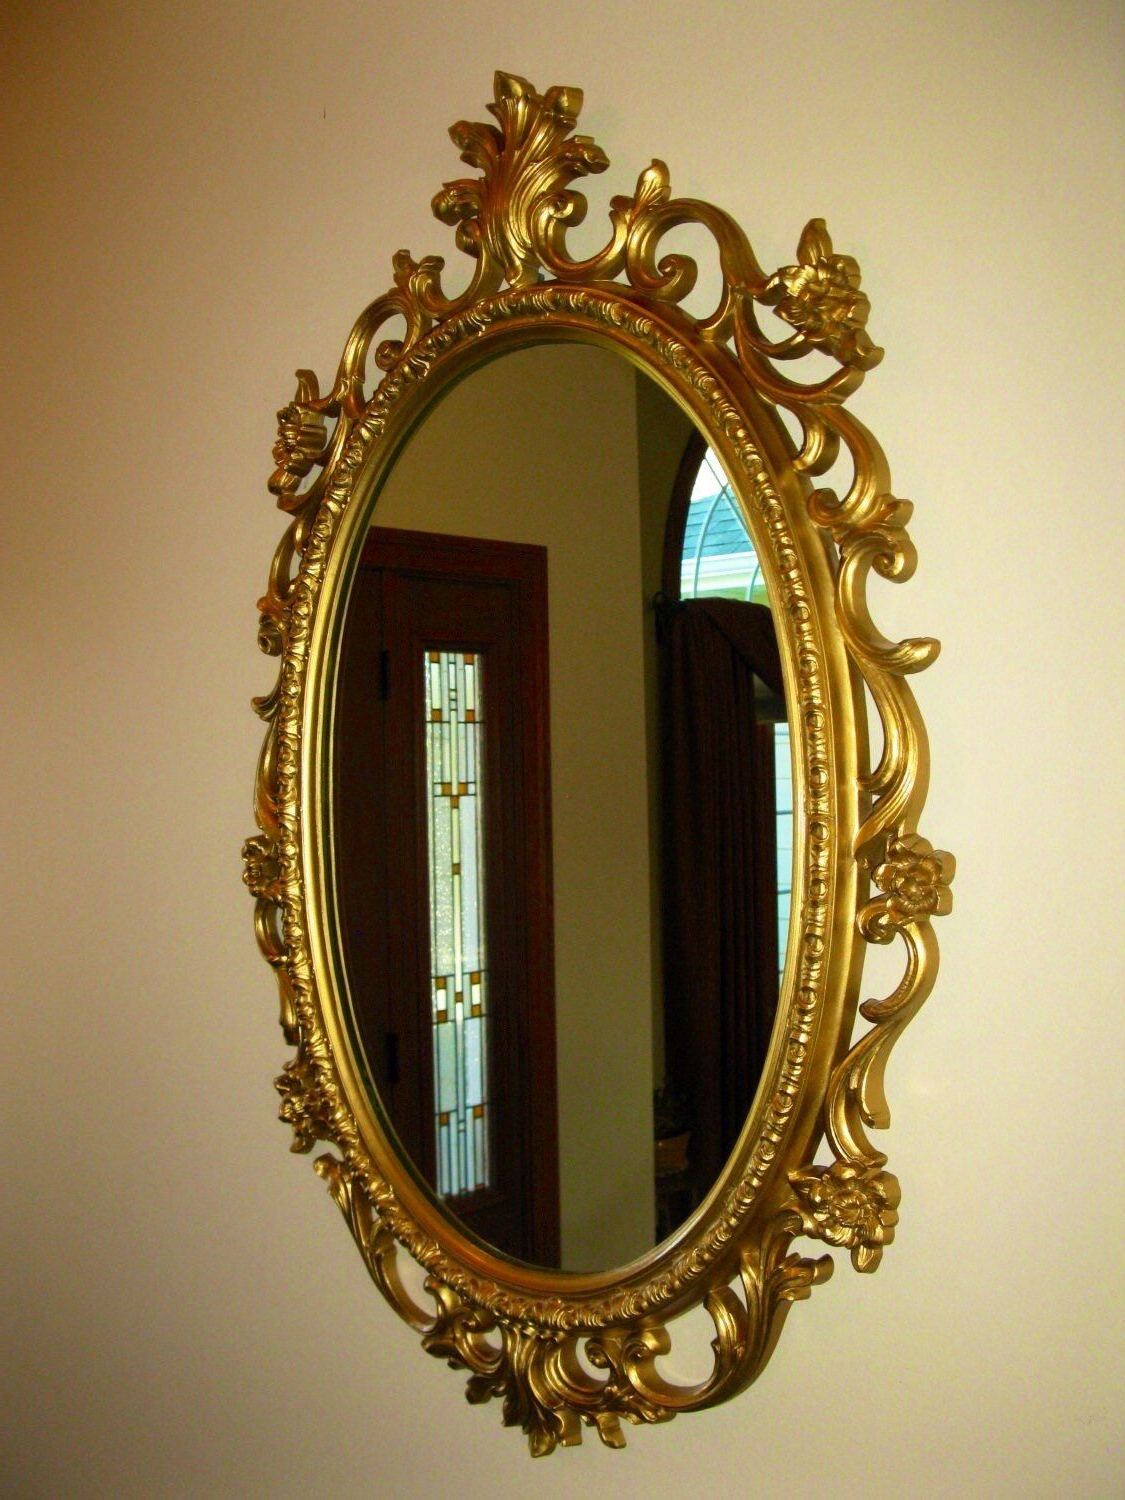 Large Plastic Wall Mirrors Within Well Known Large Homco Wall Mirror – Vintage – Oval 29x19 Gold Frame (View 12 of 20)